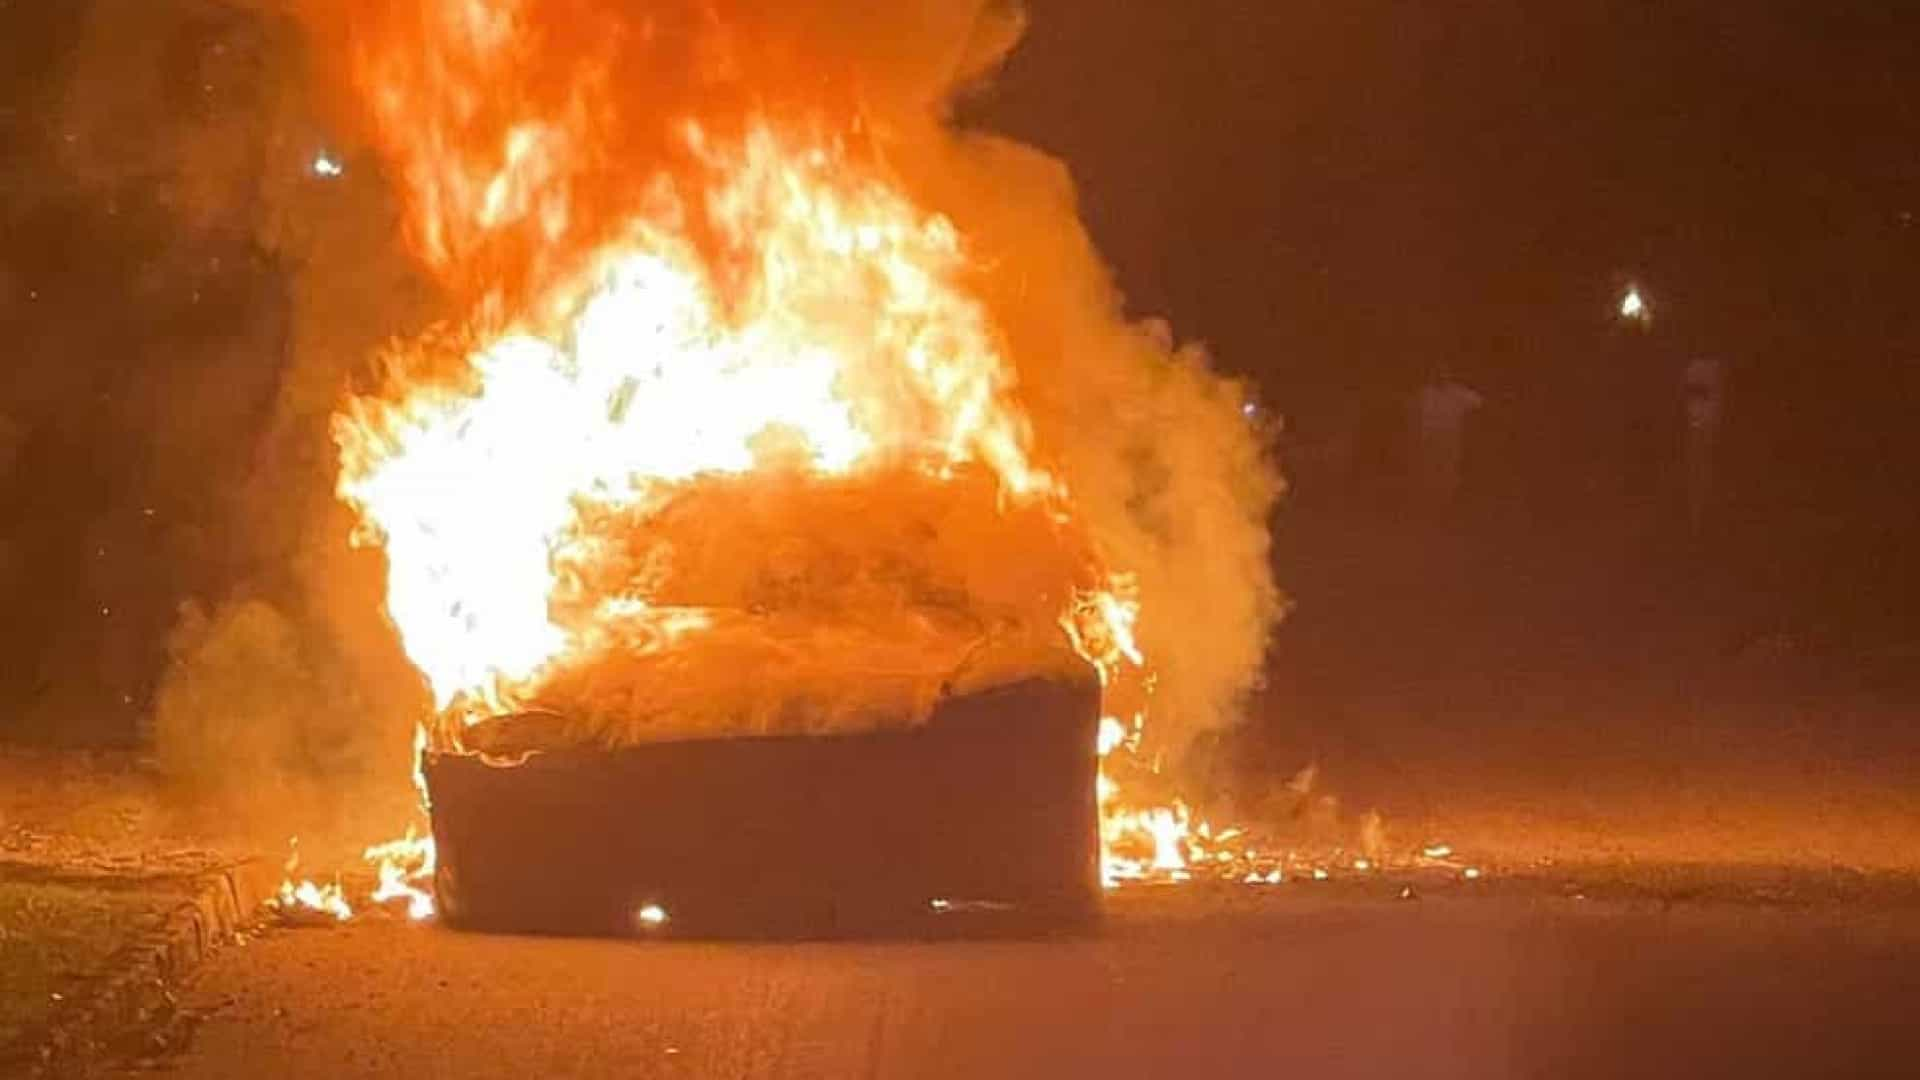 One of Tesla's new cars caught fire without explanation